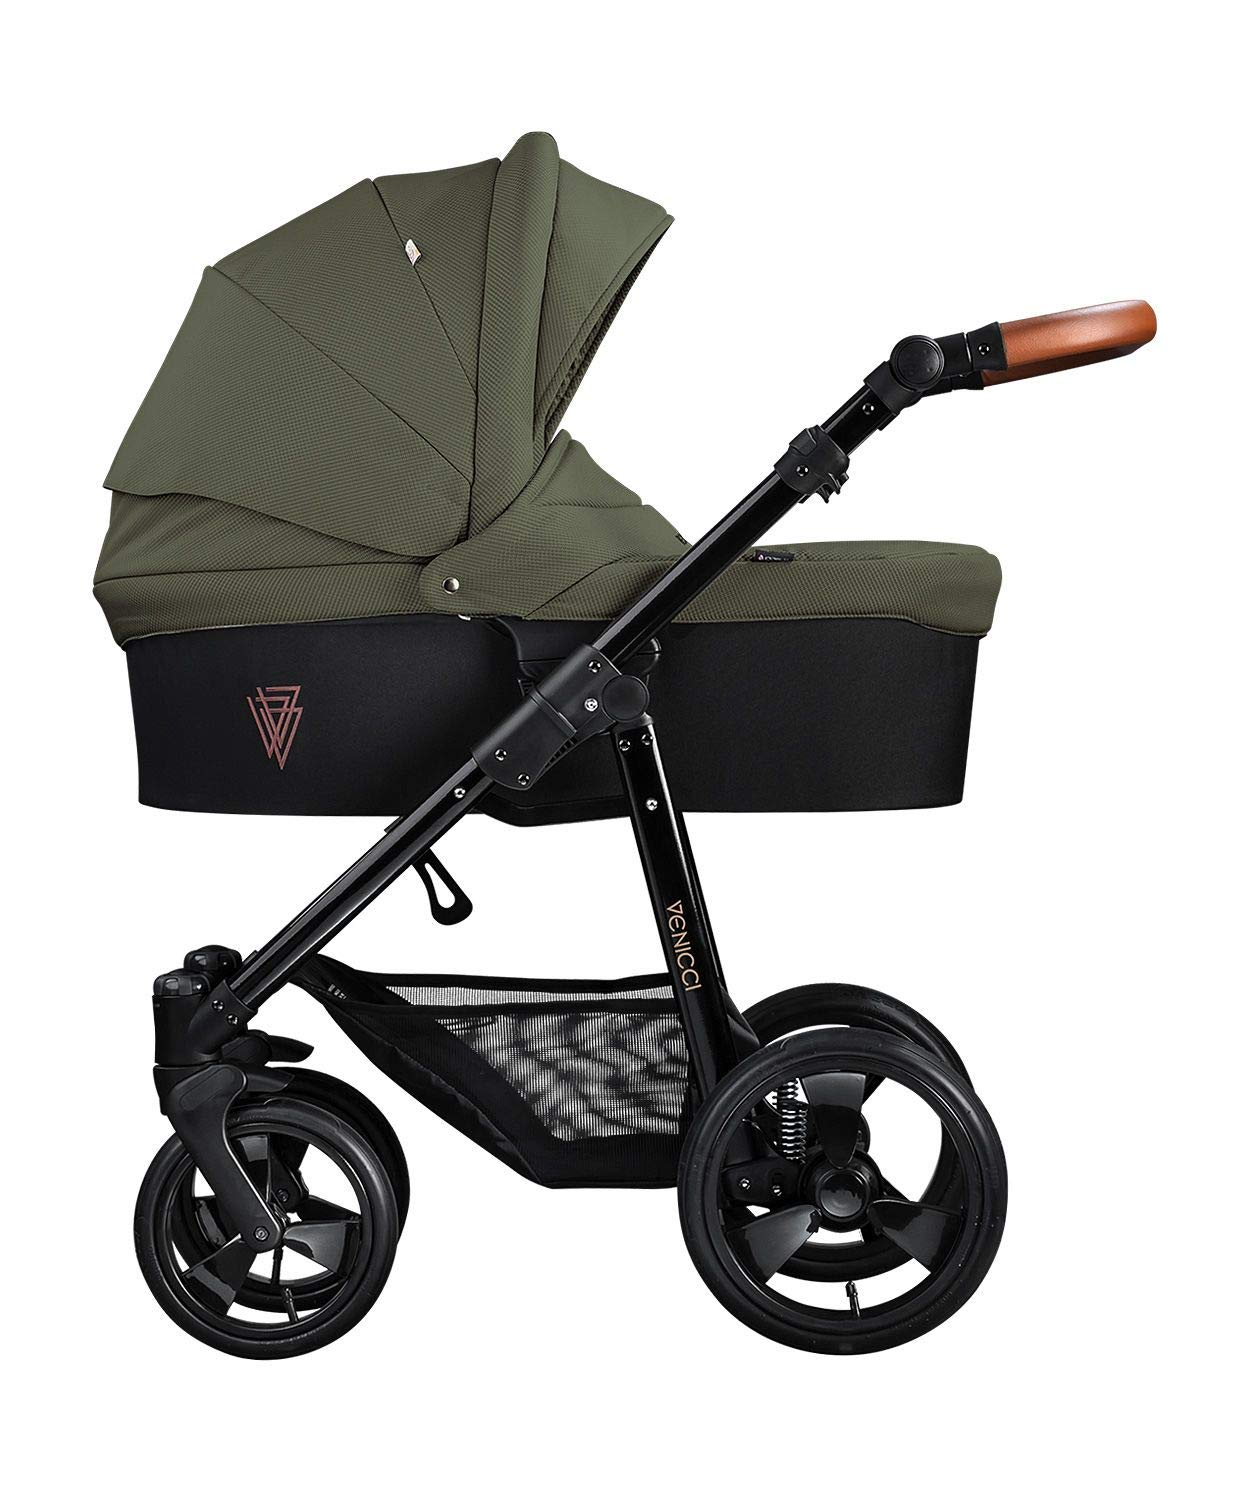 Venicci Gusto 2-in-1 Travel System - Green - with Carrycot + Changing Bag + Footmuff + Raincover + Mosquito Net + 5-Point Harness and UV 50+ Fabric + Cup Holder Venicci 2-in-1 Pram and Pushchair with custom travel options Suitable for your baby from birth until approximately 36 months 5-point harness to enhance the safety of your child 2